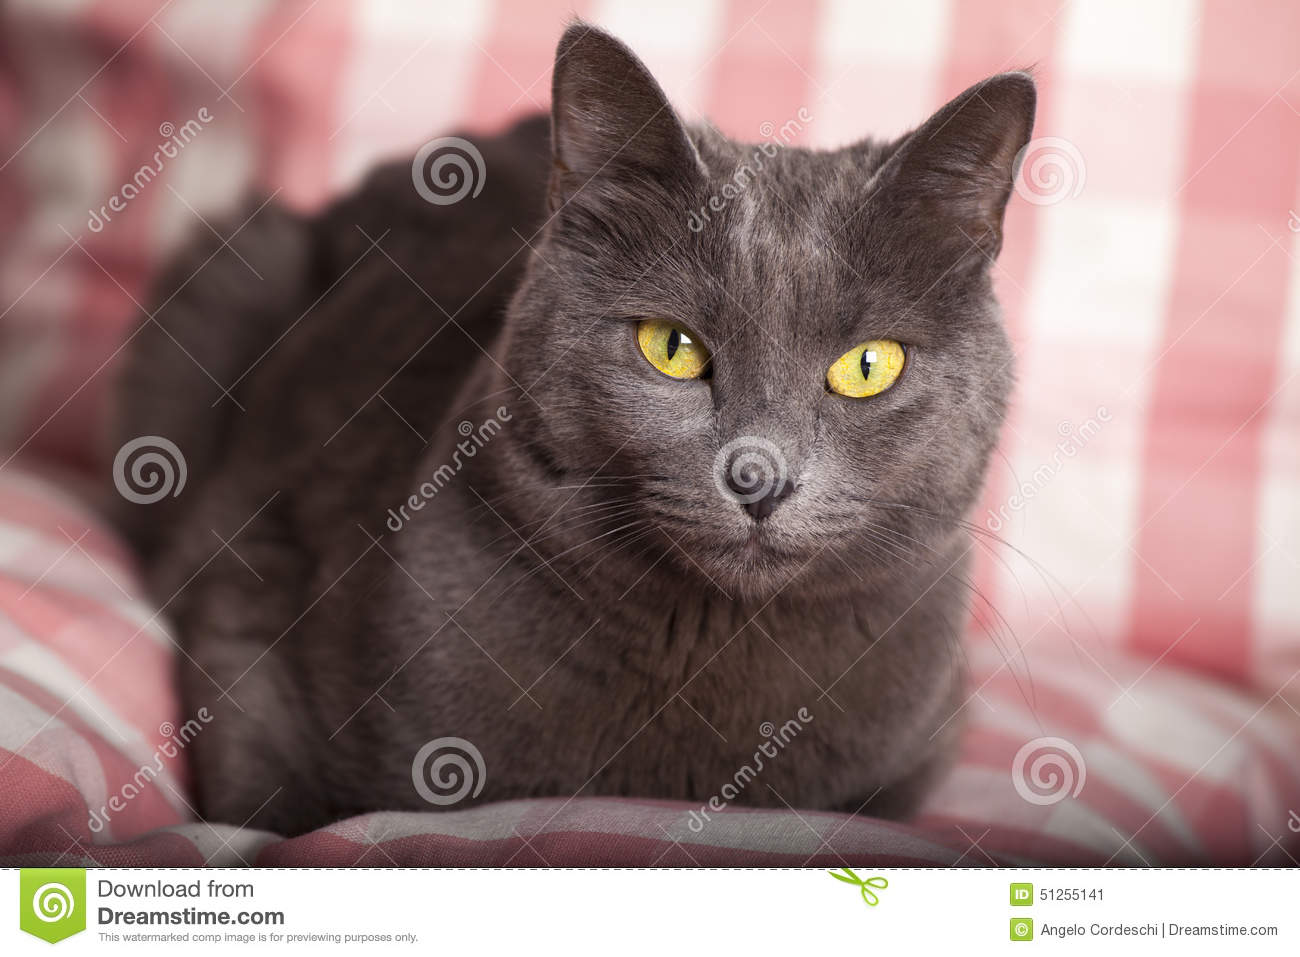 Russian blue cat with yellow eyes